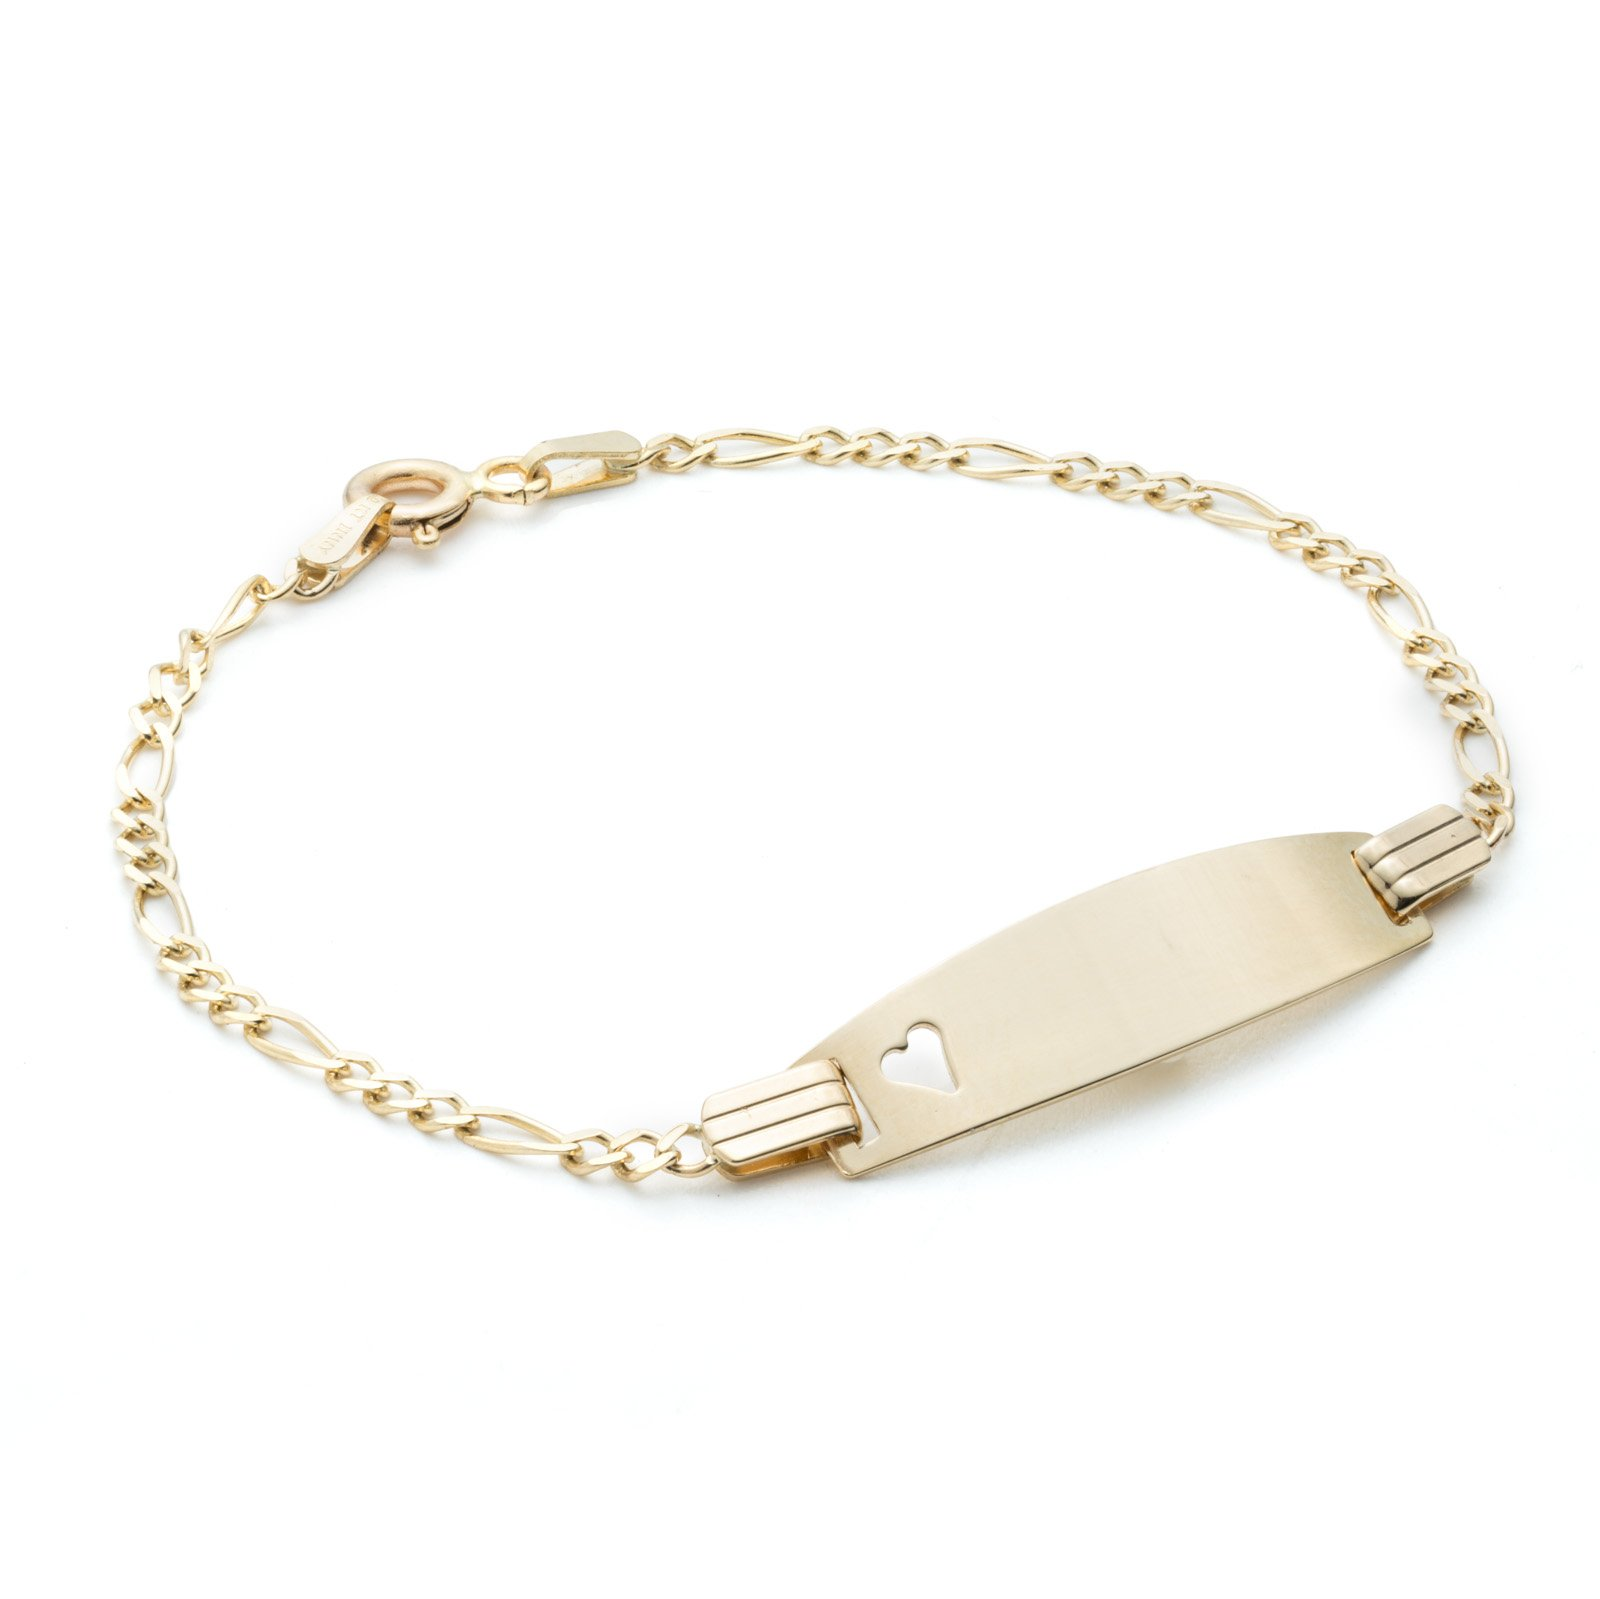 6 Inch 10k Gold Figaro ID Bracelet with Small Heart for Children 2mm